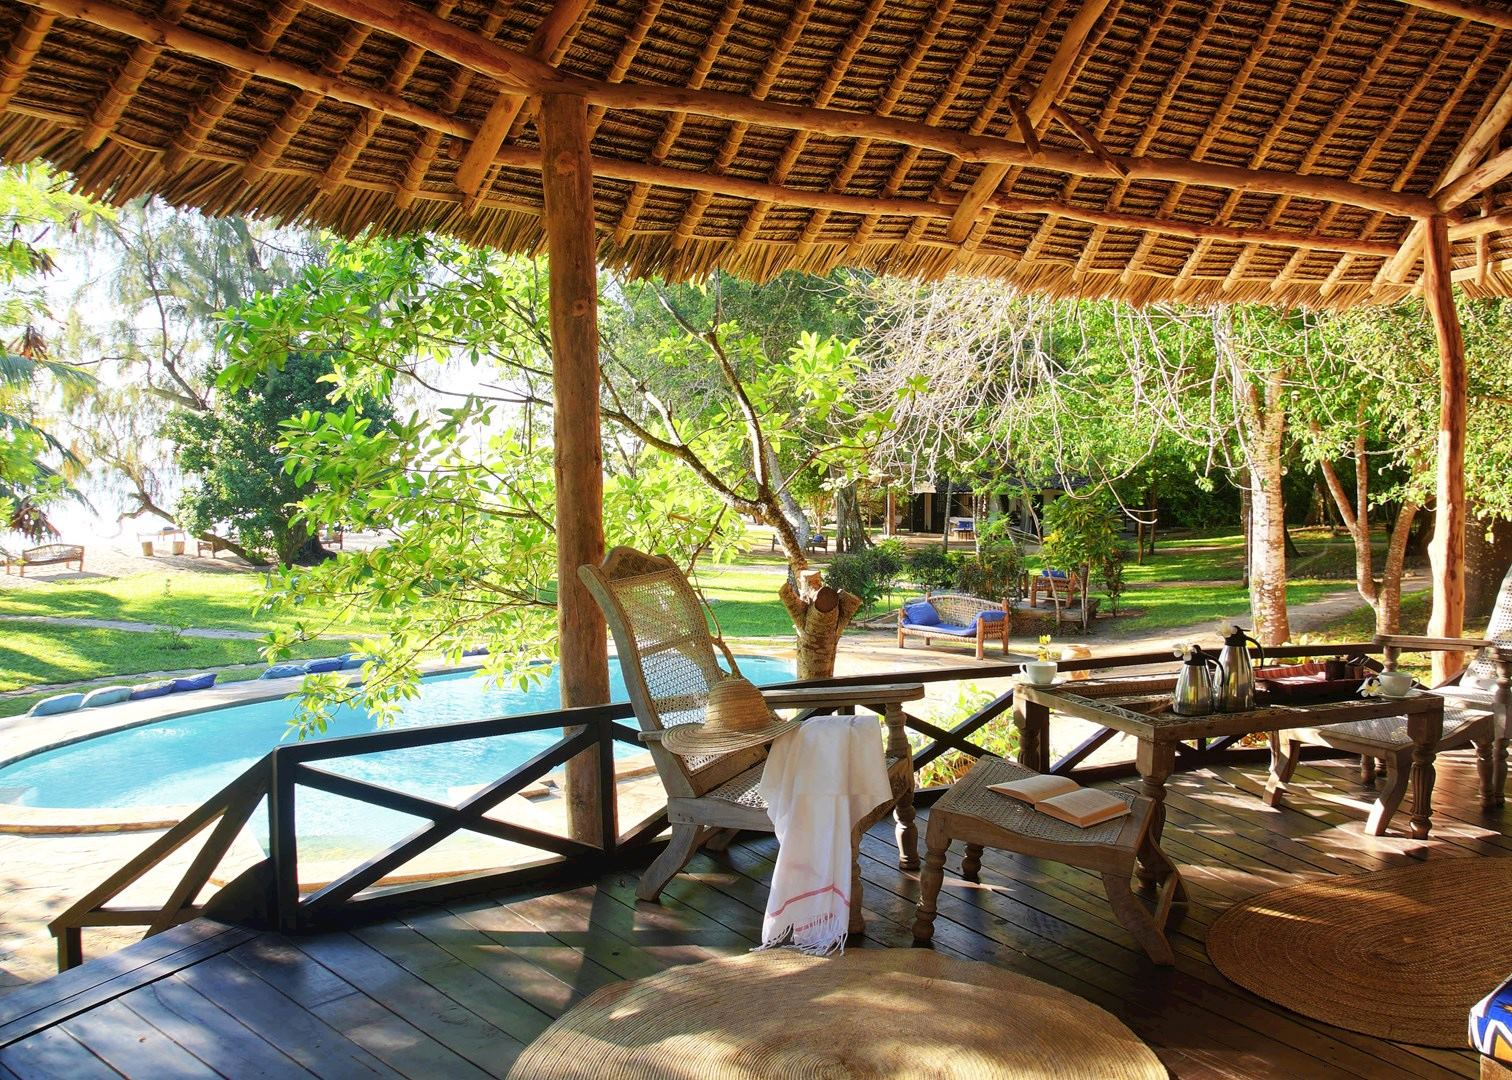 Kinondo Kwetu Hotels In Diani Beach Audley Travel